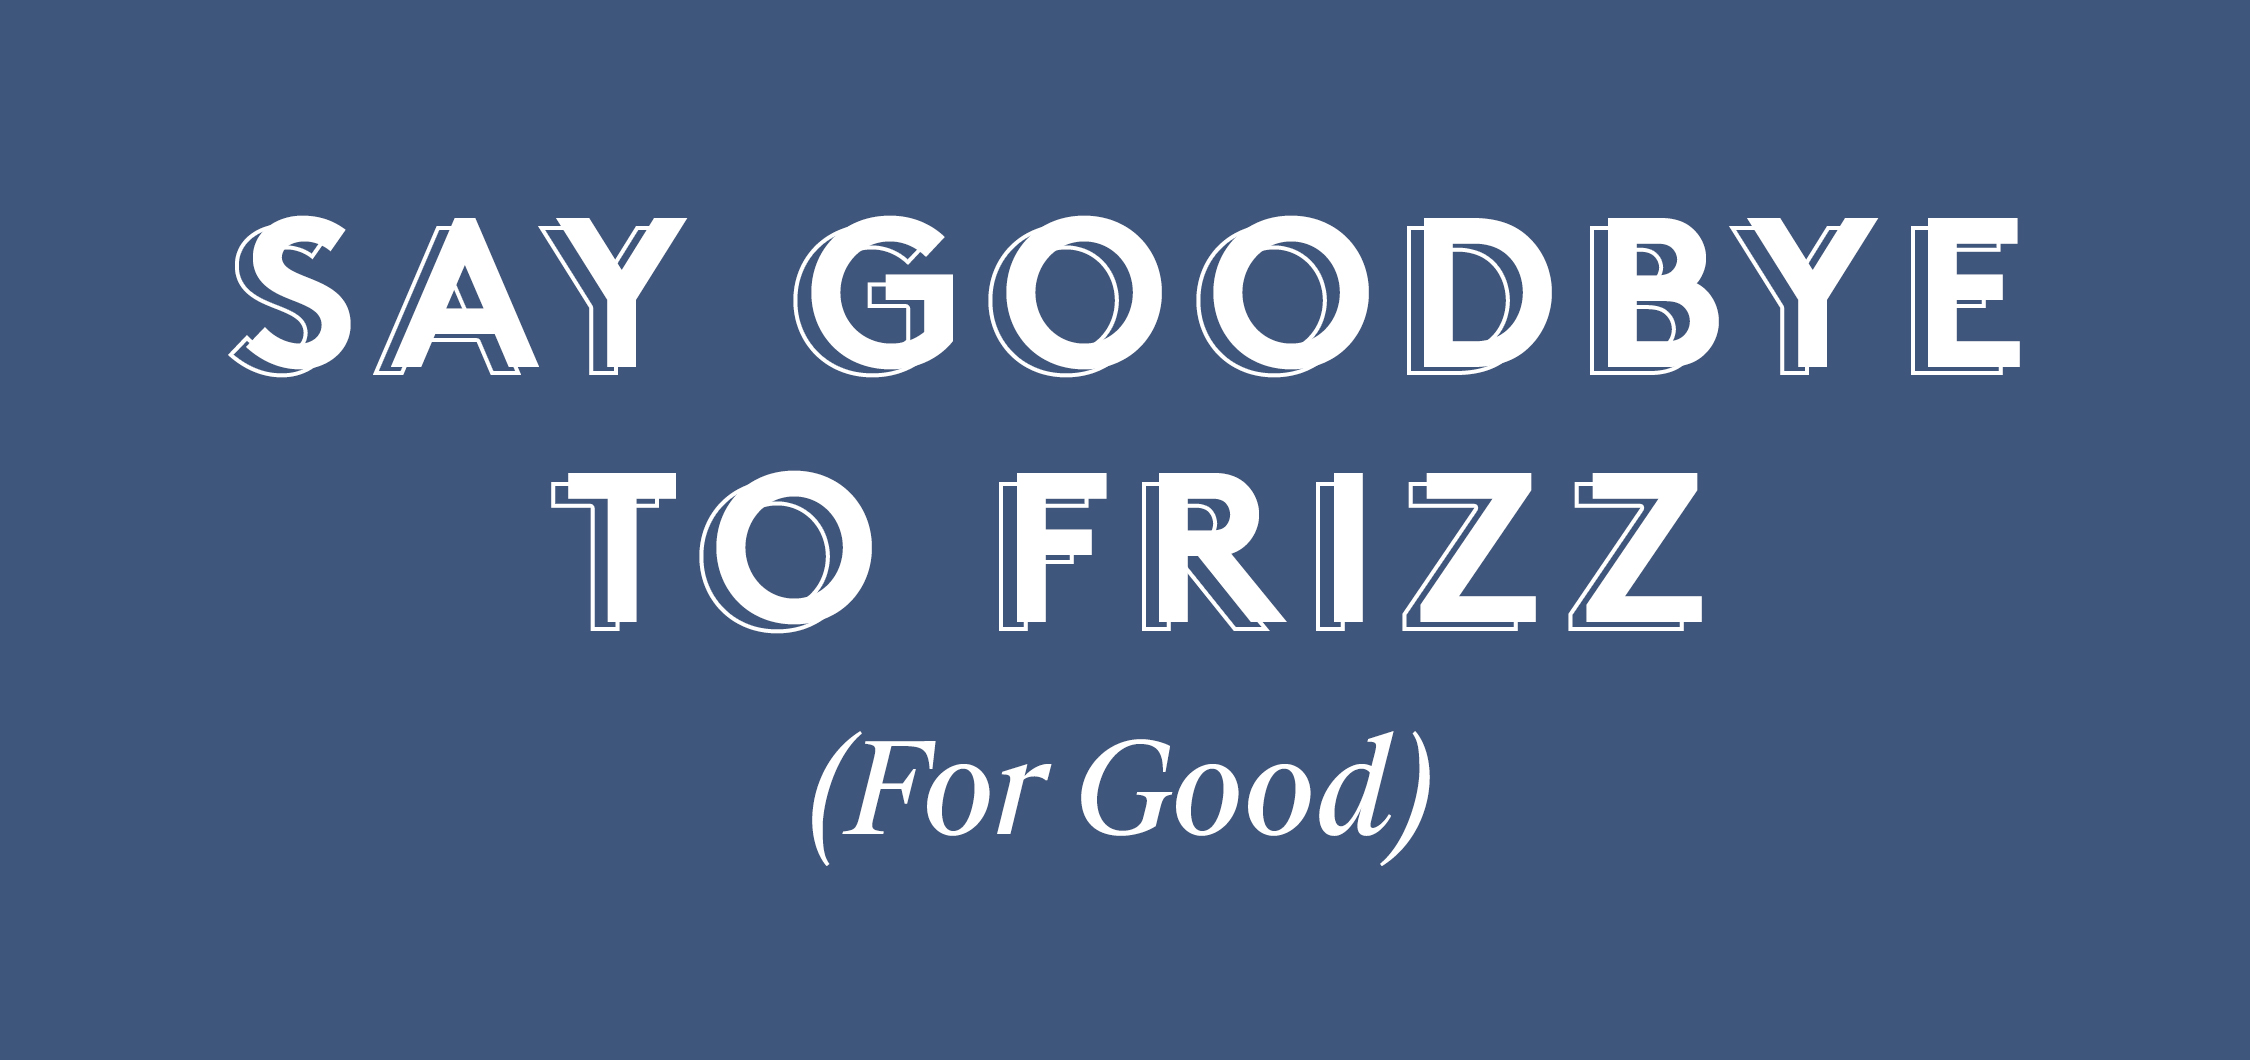 Say Goodbye to Frizz (For Good)